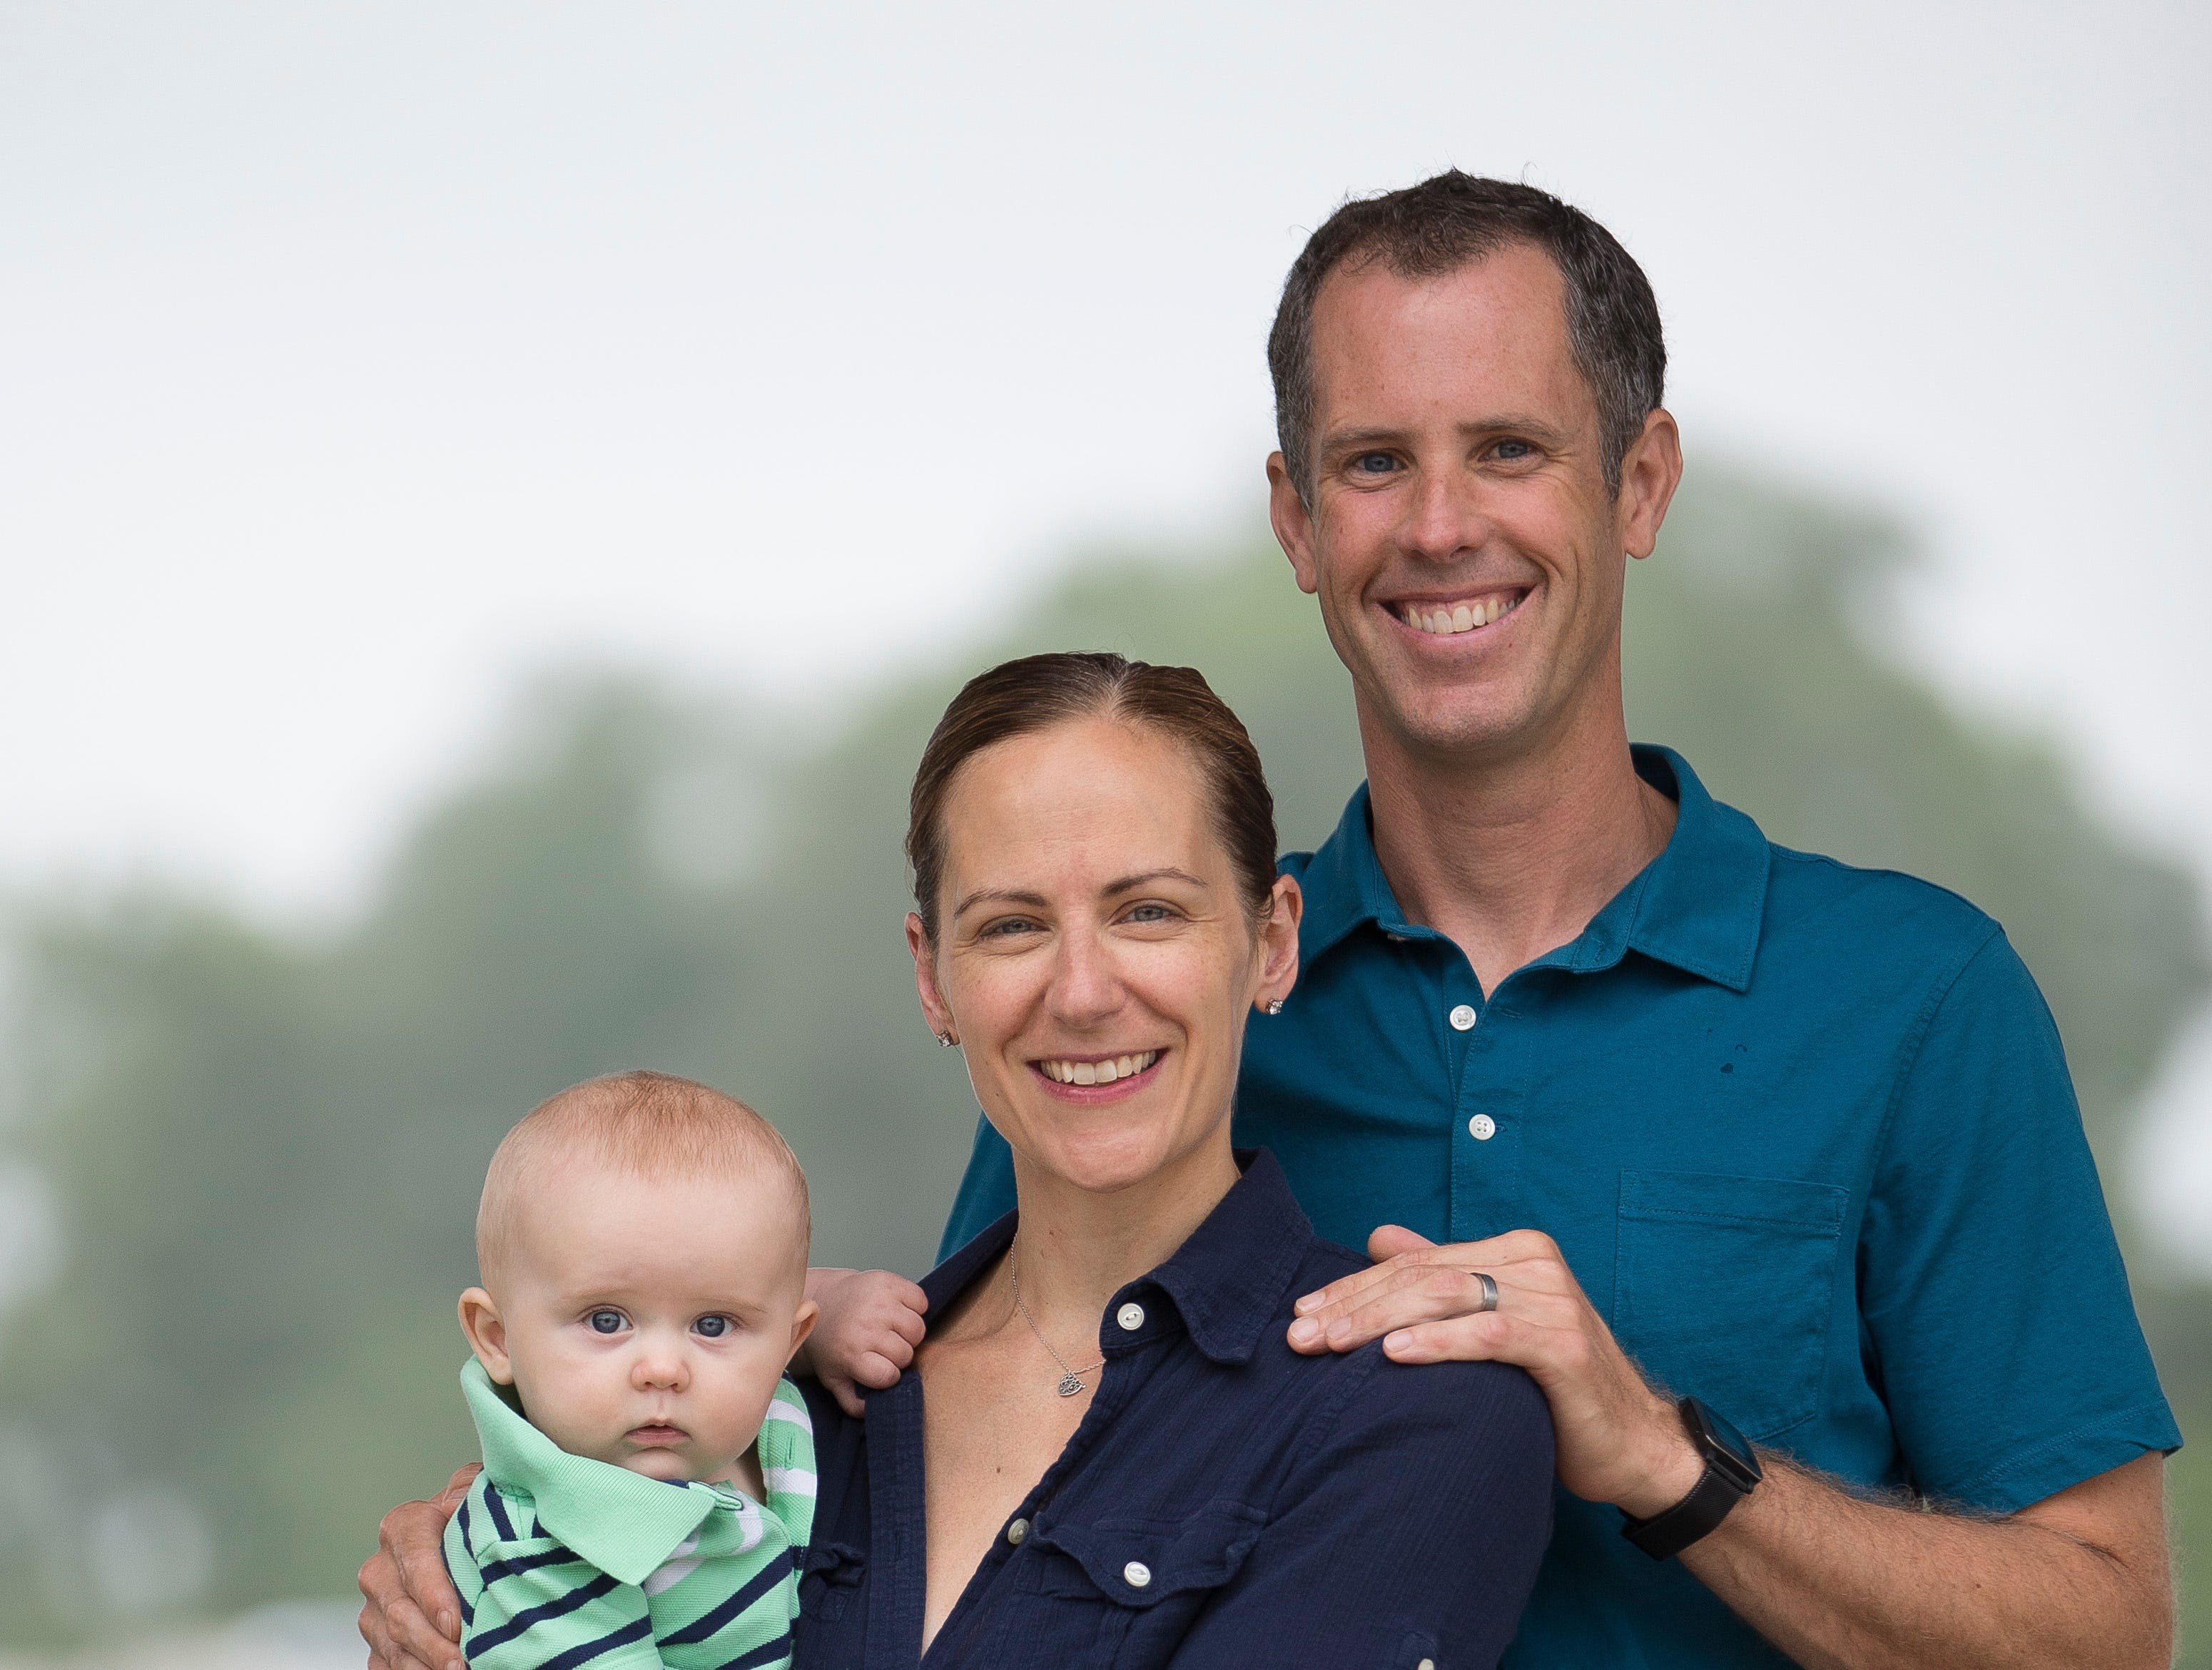 Liz Scott with her husband Henry Scott and her 5-month-old son Alexander. The family lives in South Bend, Indiana.